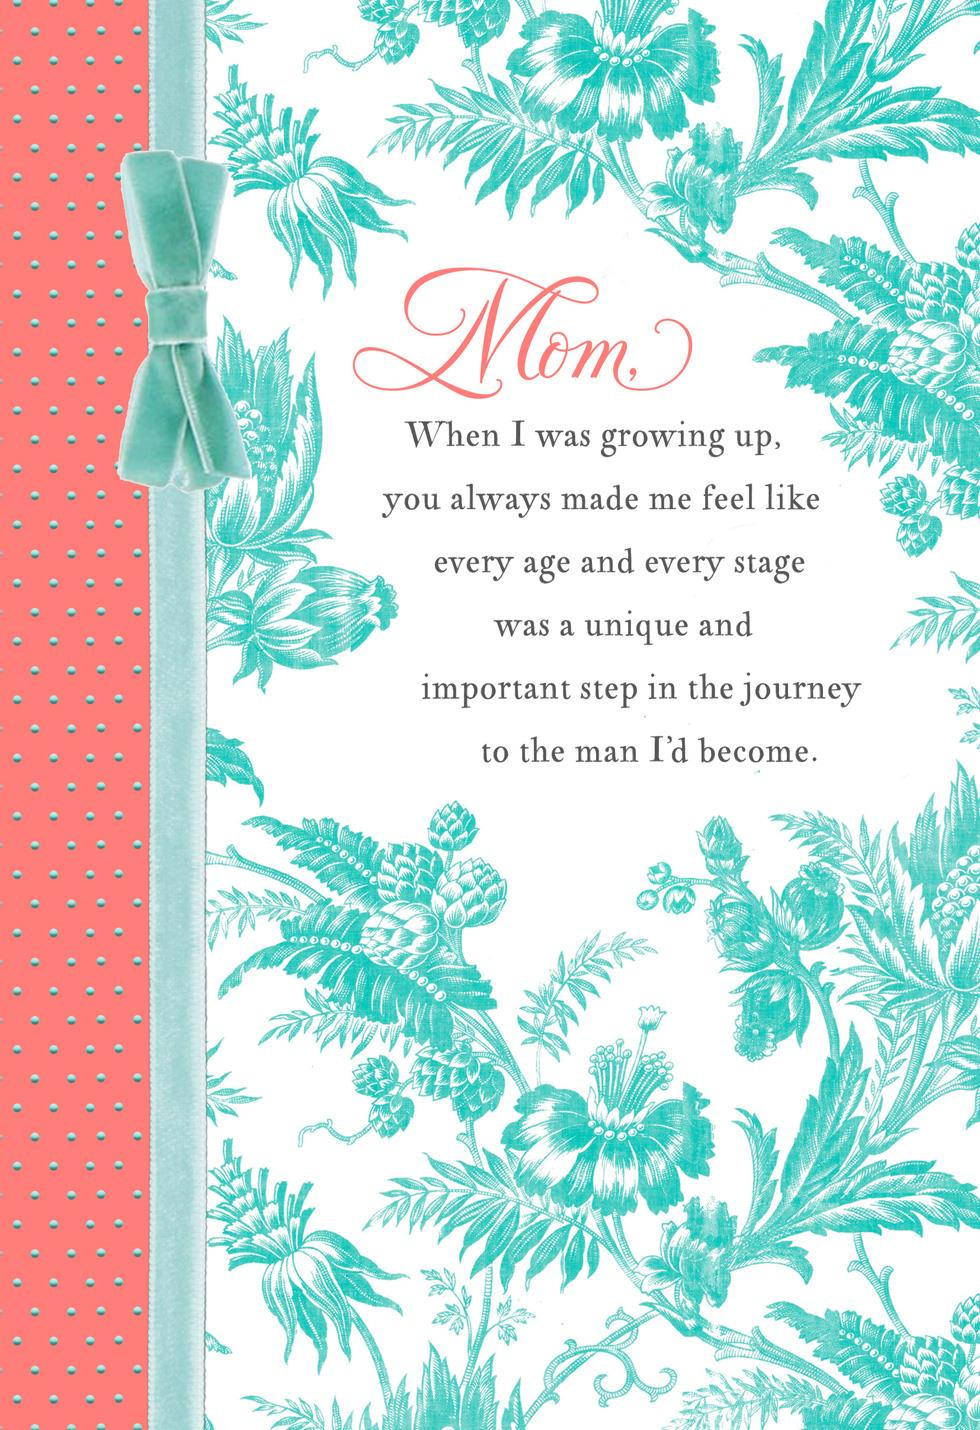 Toile Print Birthday Card For Mom From Son